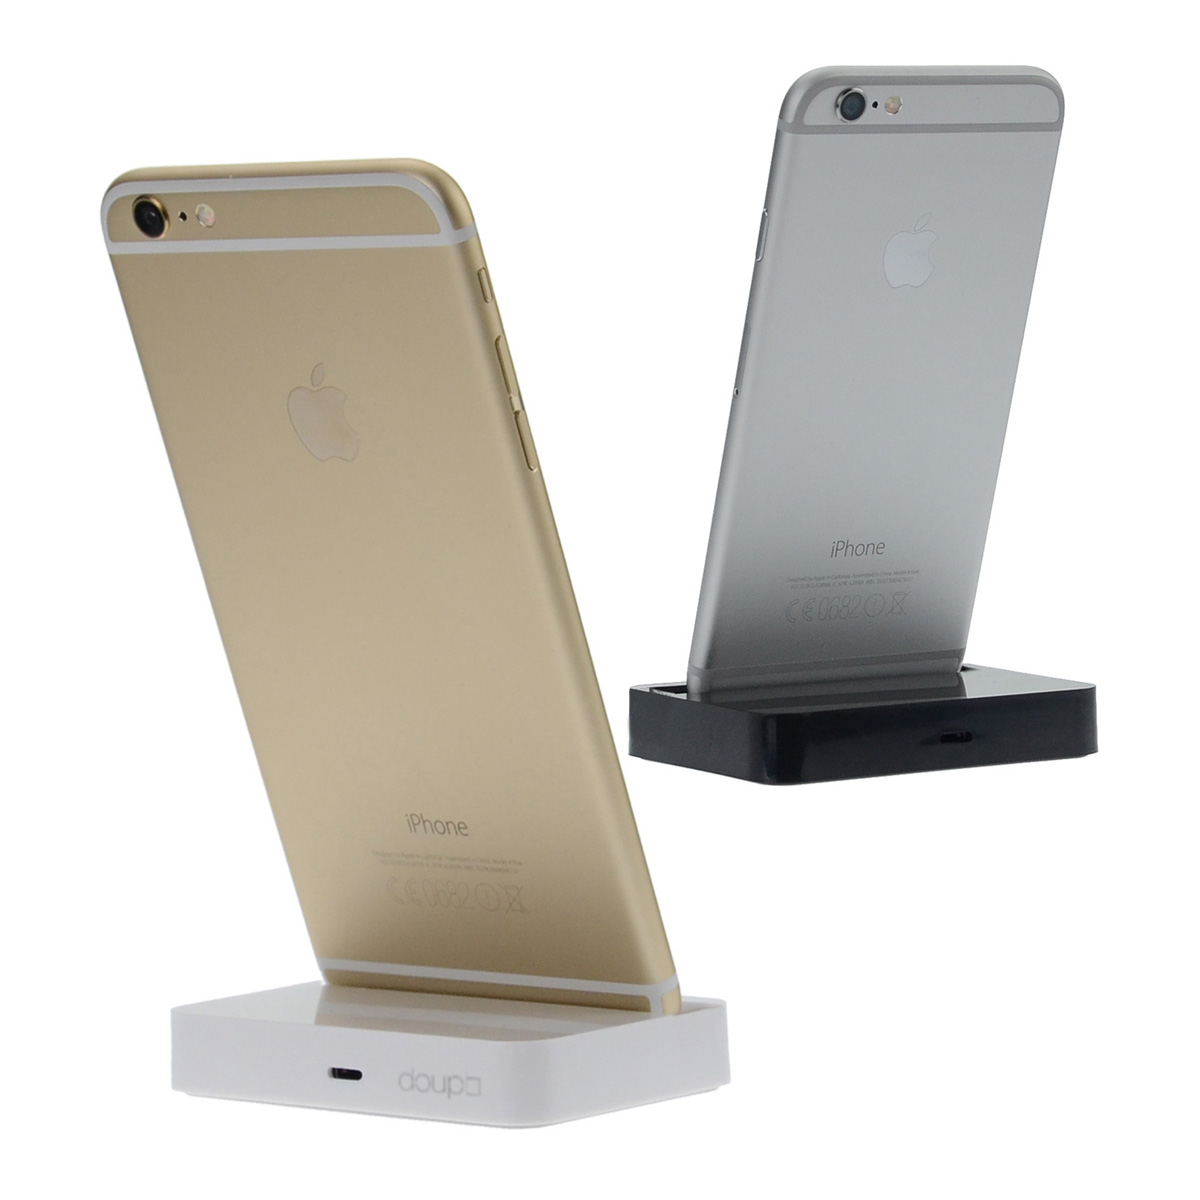 iphone 6 dock dock station iphone 6 6s plus 5 5c 5s se loading 11322